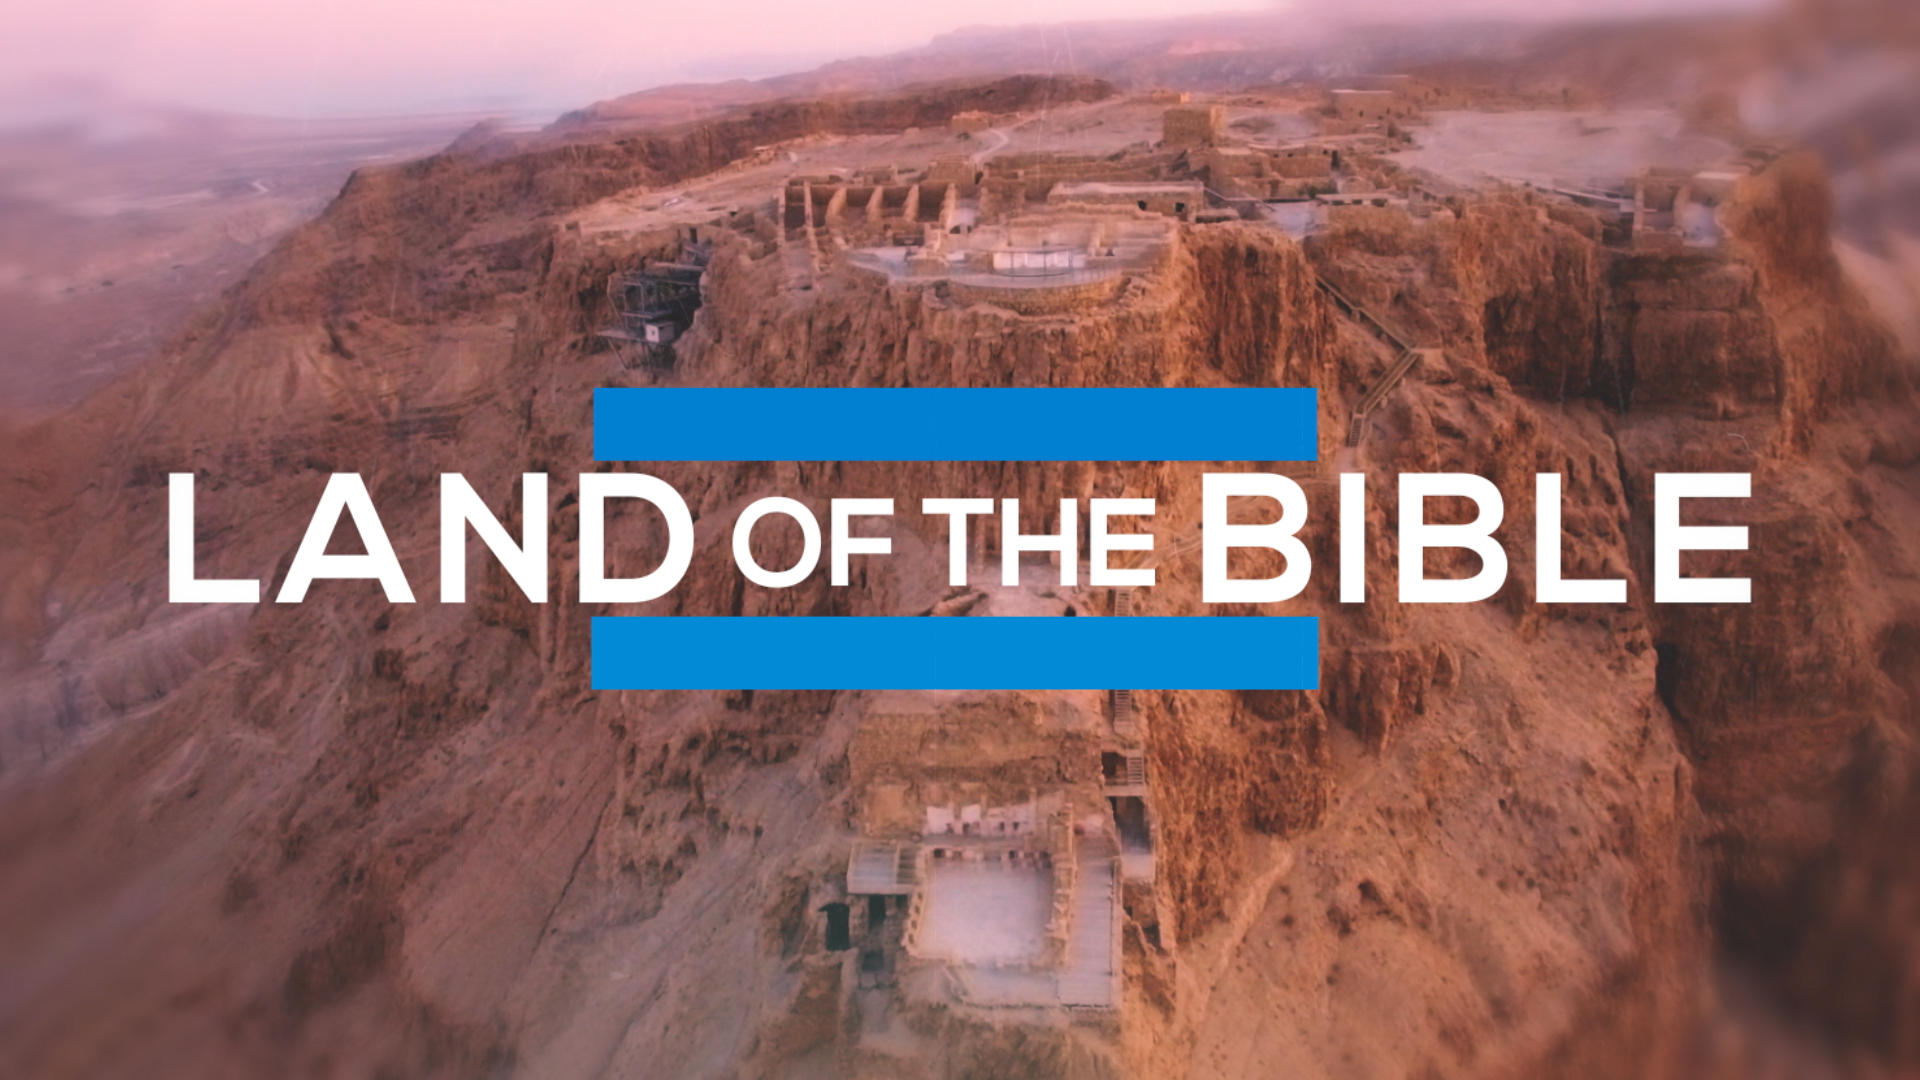 Land of the Bible